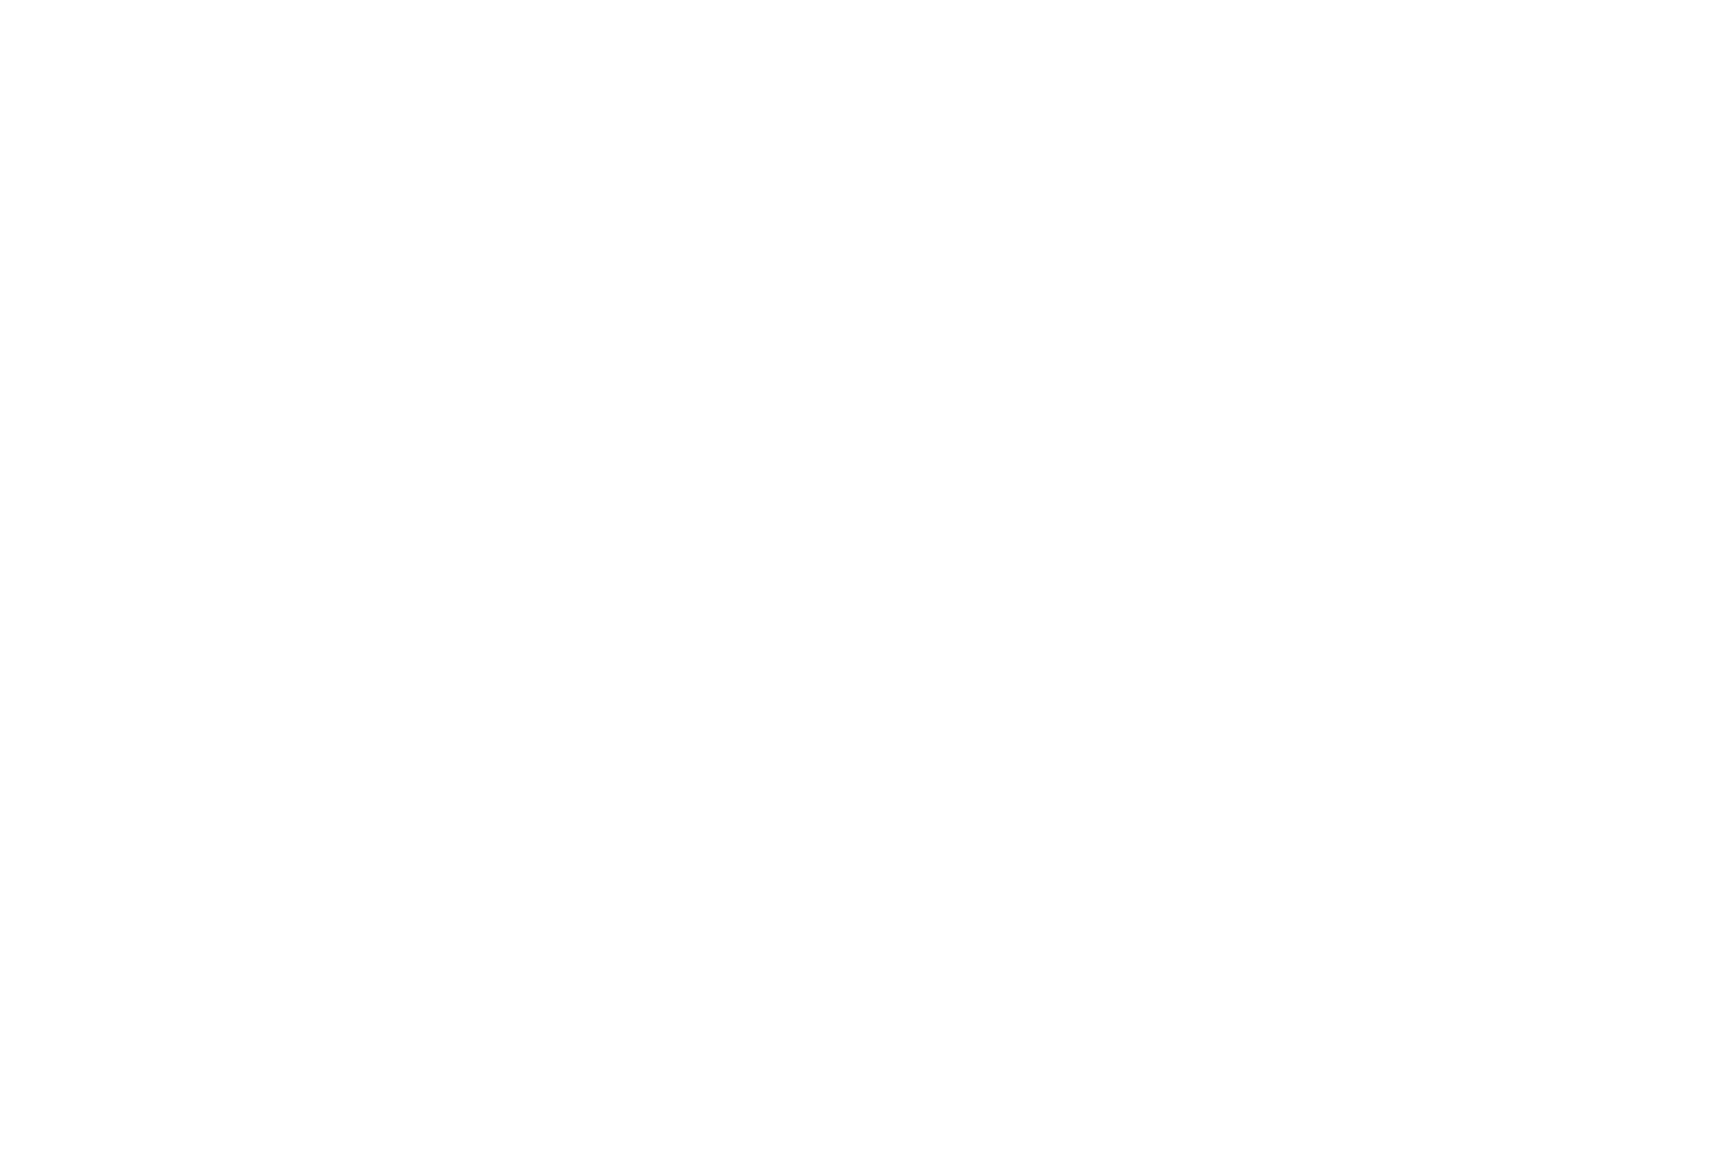 OFFICIAL SELECTION - Courage Film Festival - 2019.png